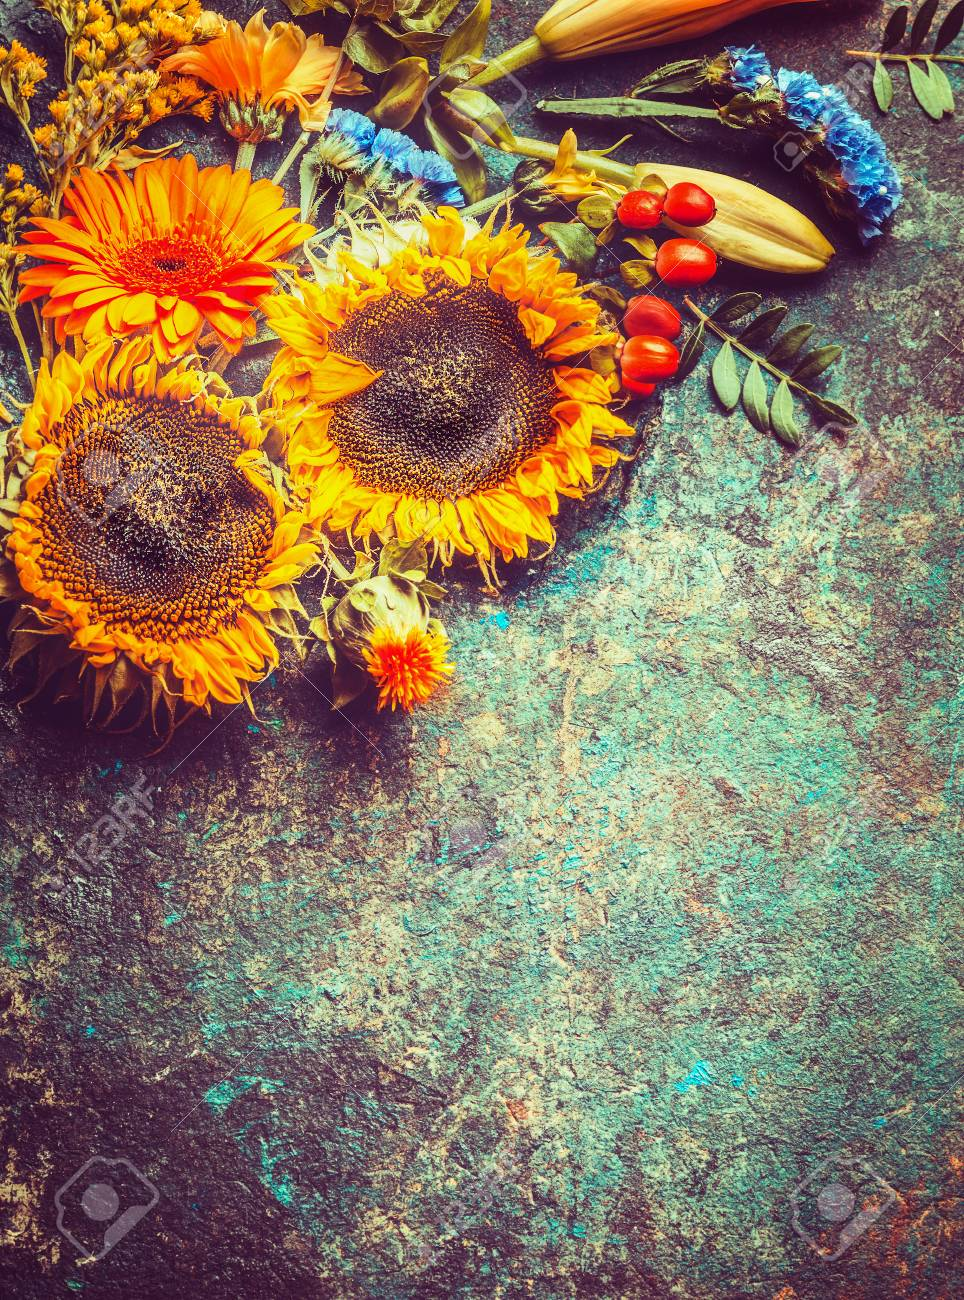 Autumn Floral Composing With Sunflowers On Vintage Rustic Background Top View Stock Photo